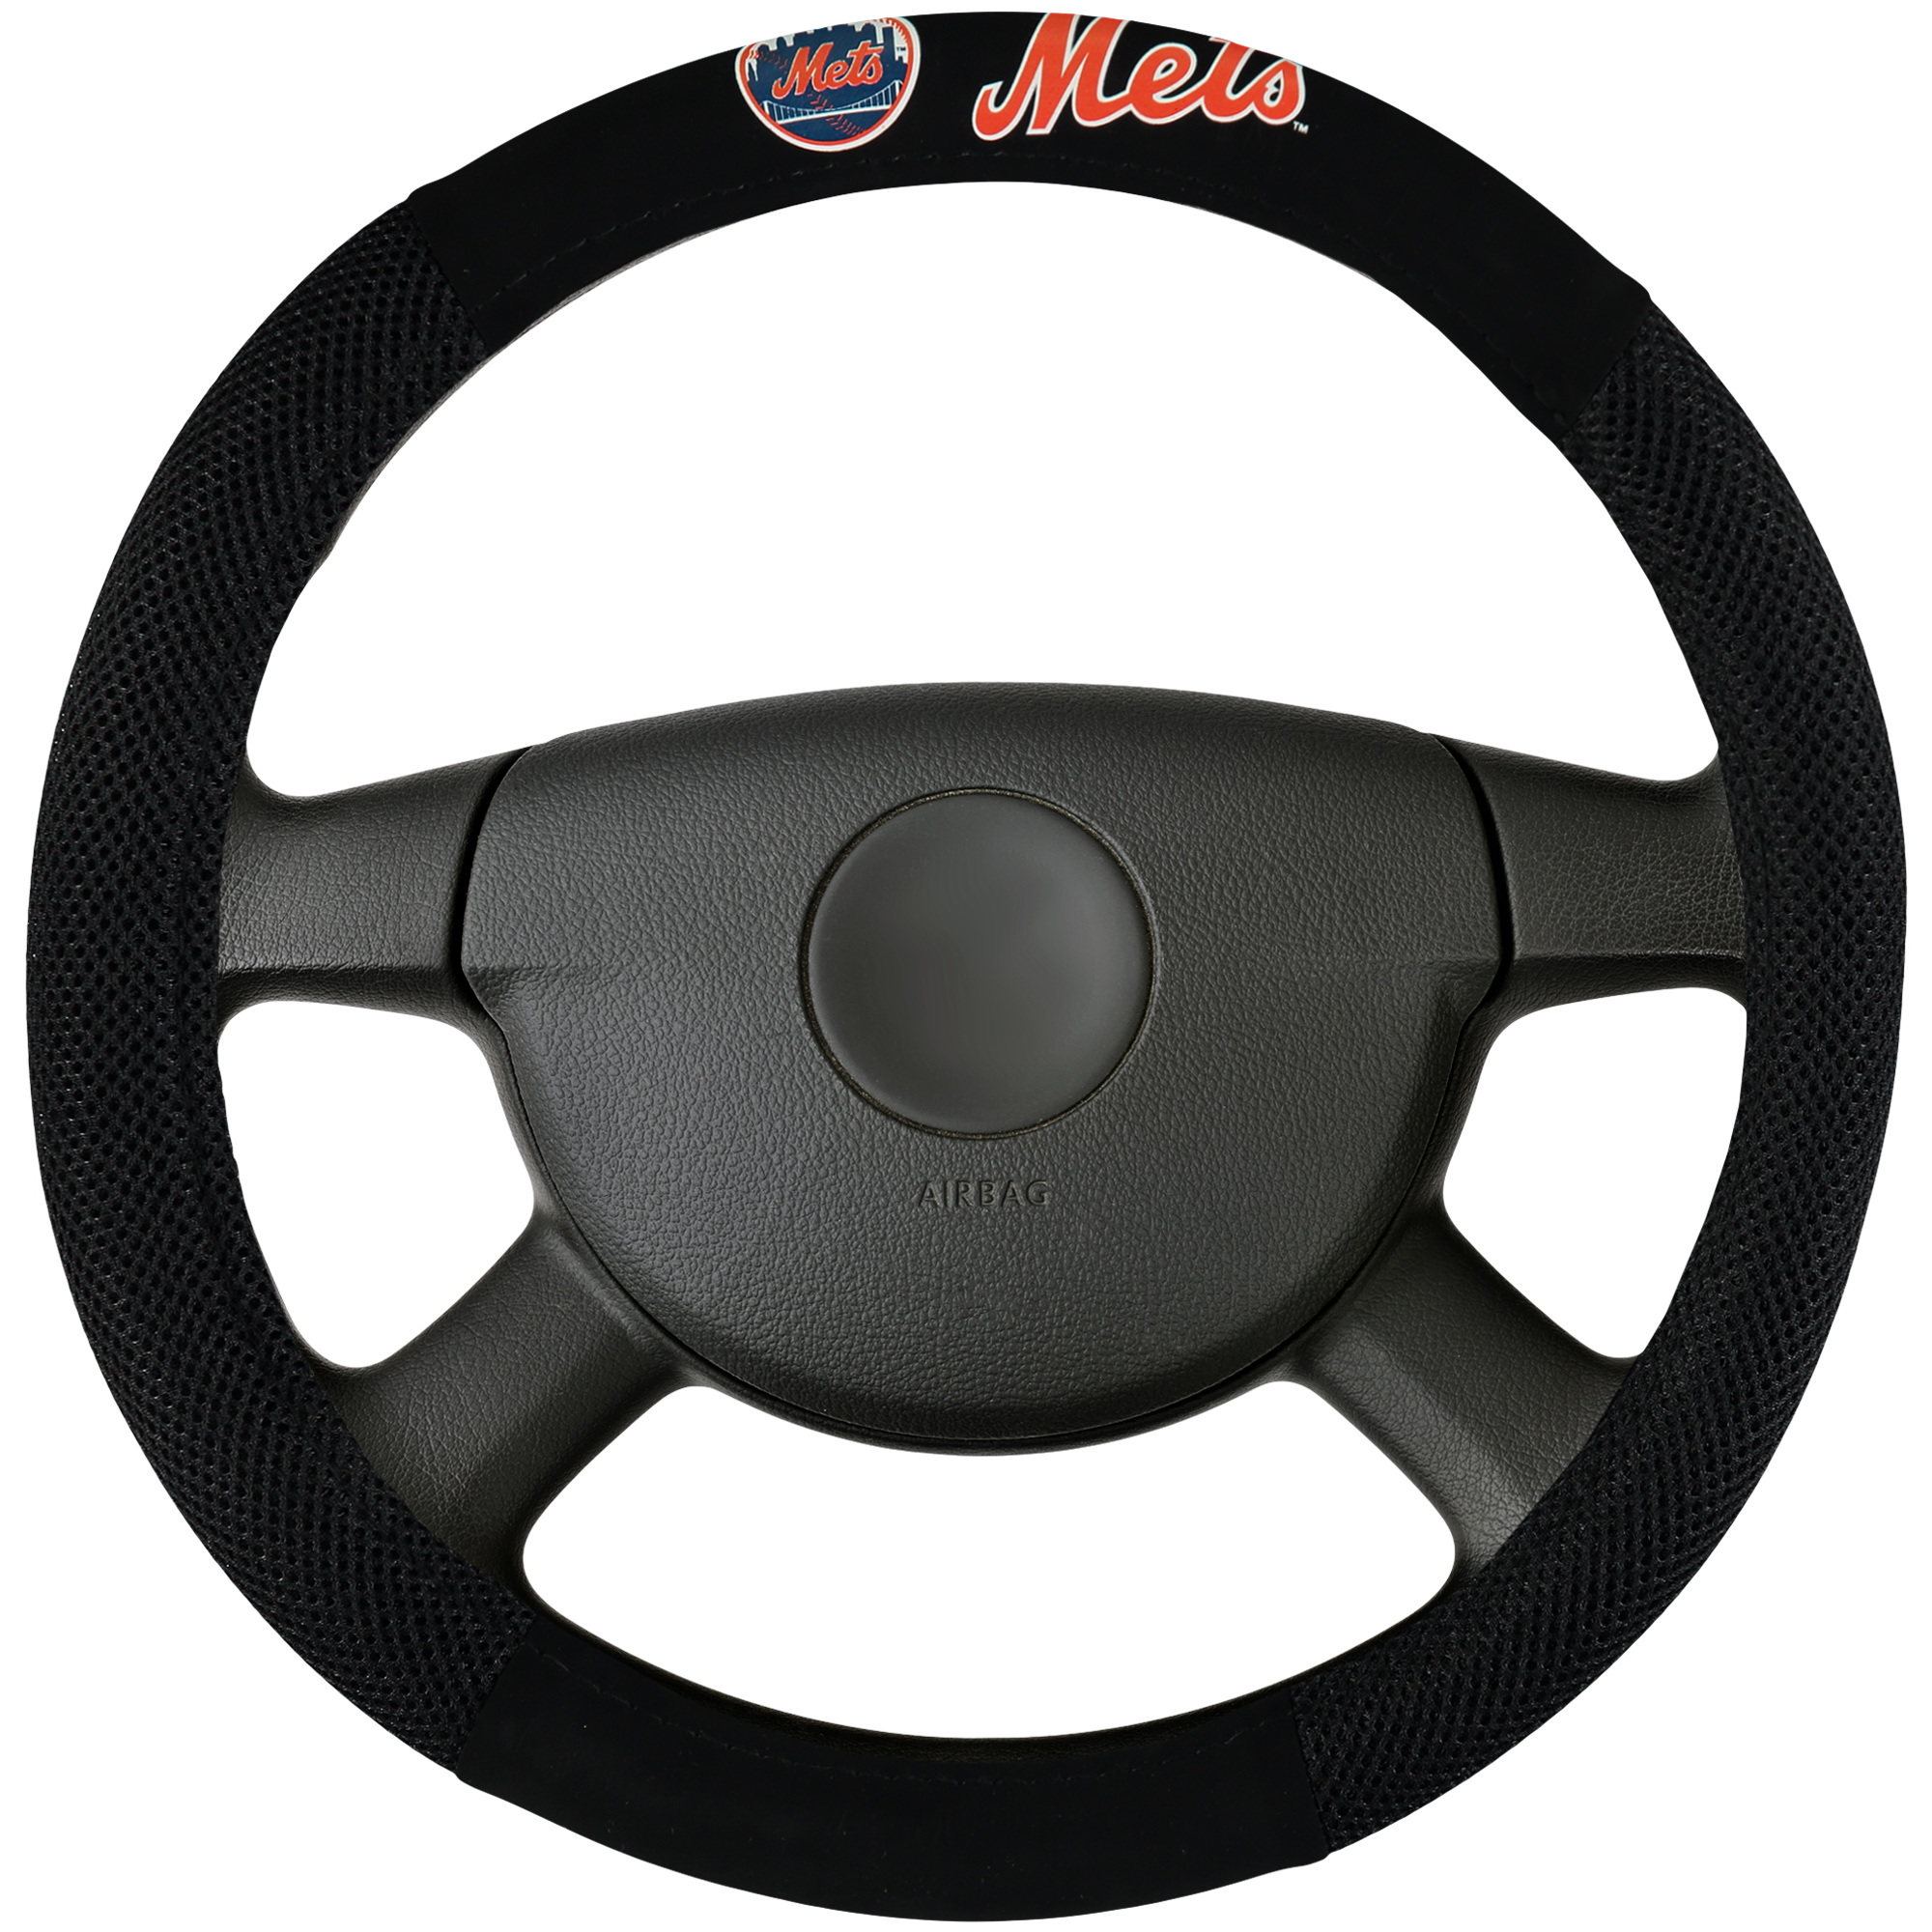 New York Mets Poly-Suede Steering Wheel Cover - No Size